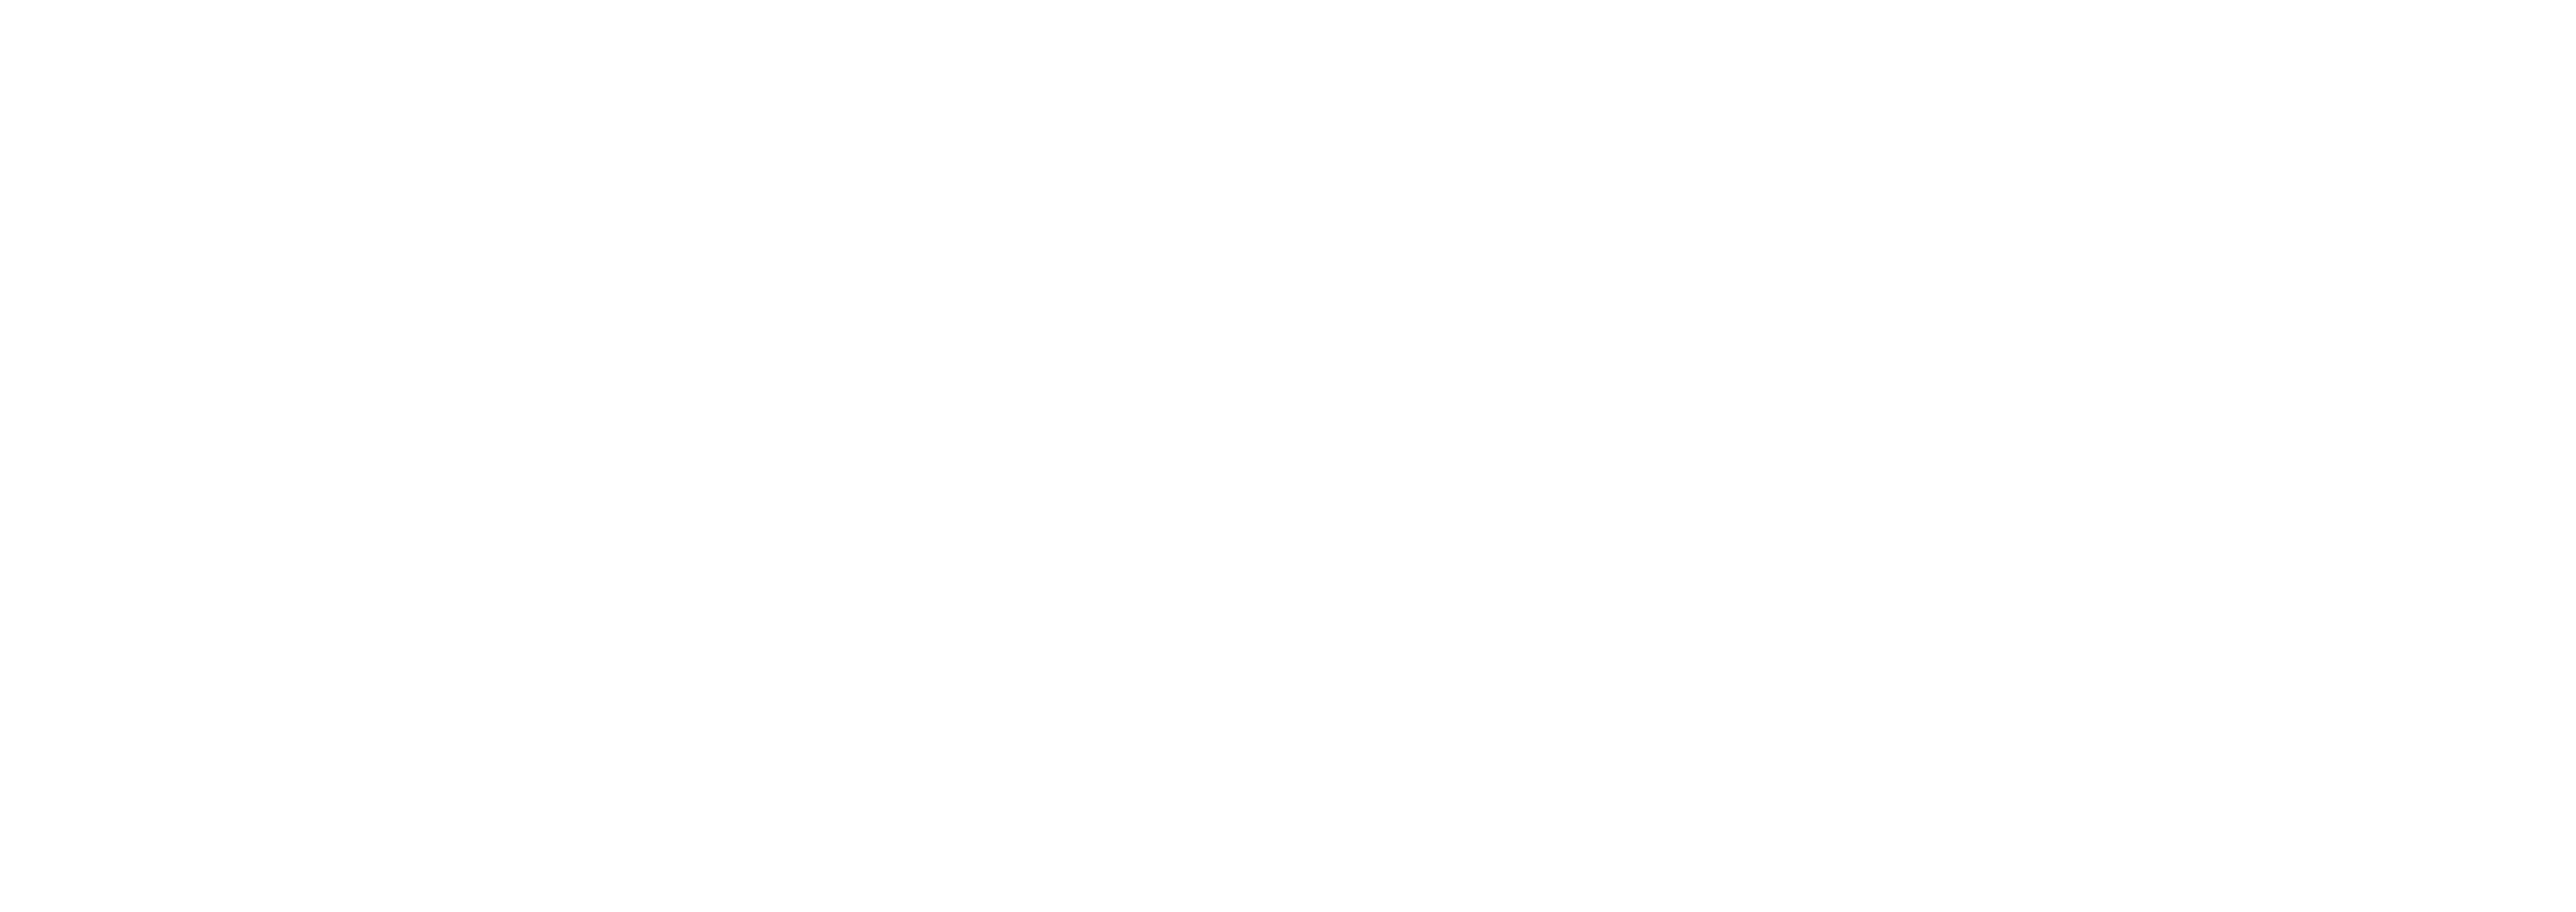 Moblize.it LLC